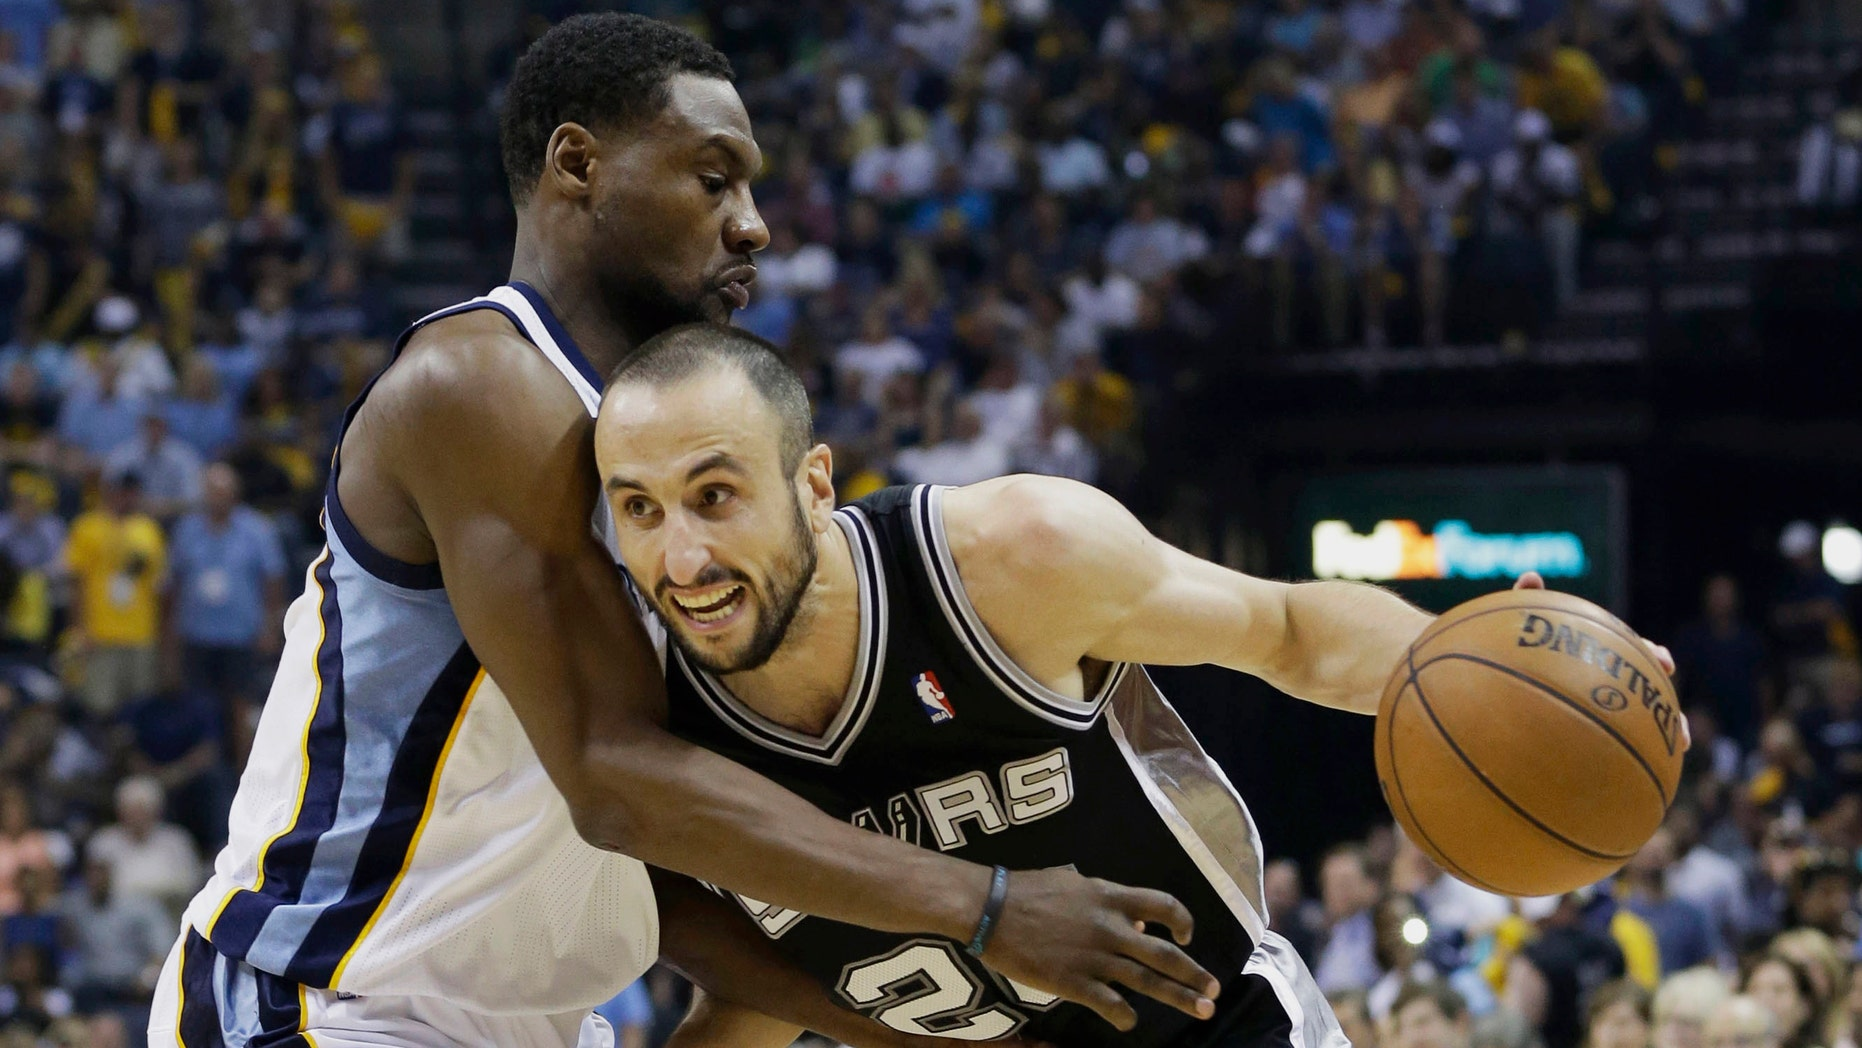 Memphis Grizzlies guard Tony Allen, left, defends San Antonio Spurs guard Manu Ginobili, of Argentina, during the second half in Game 3 of the Western Conference finals NBA basketball playoff series in Memphis, Tenn., Saturday, May 25, 2013. The Spurs defeated the Grizzlies 104-93 in overtime. (AP Photo/Danny Johnston)